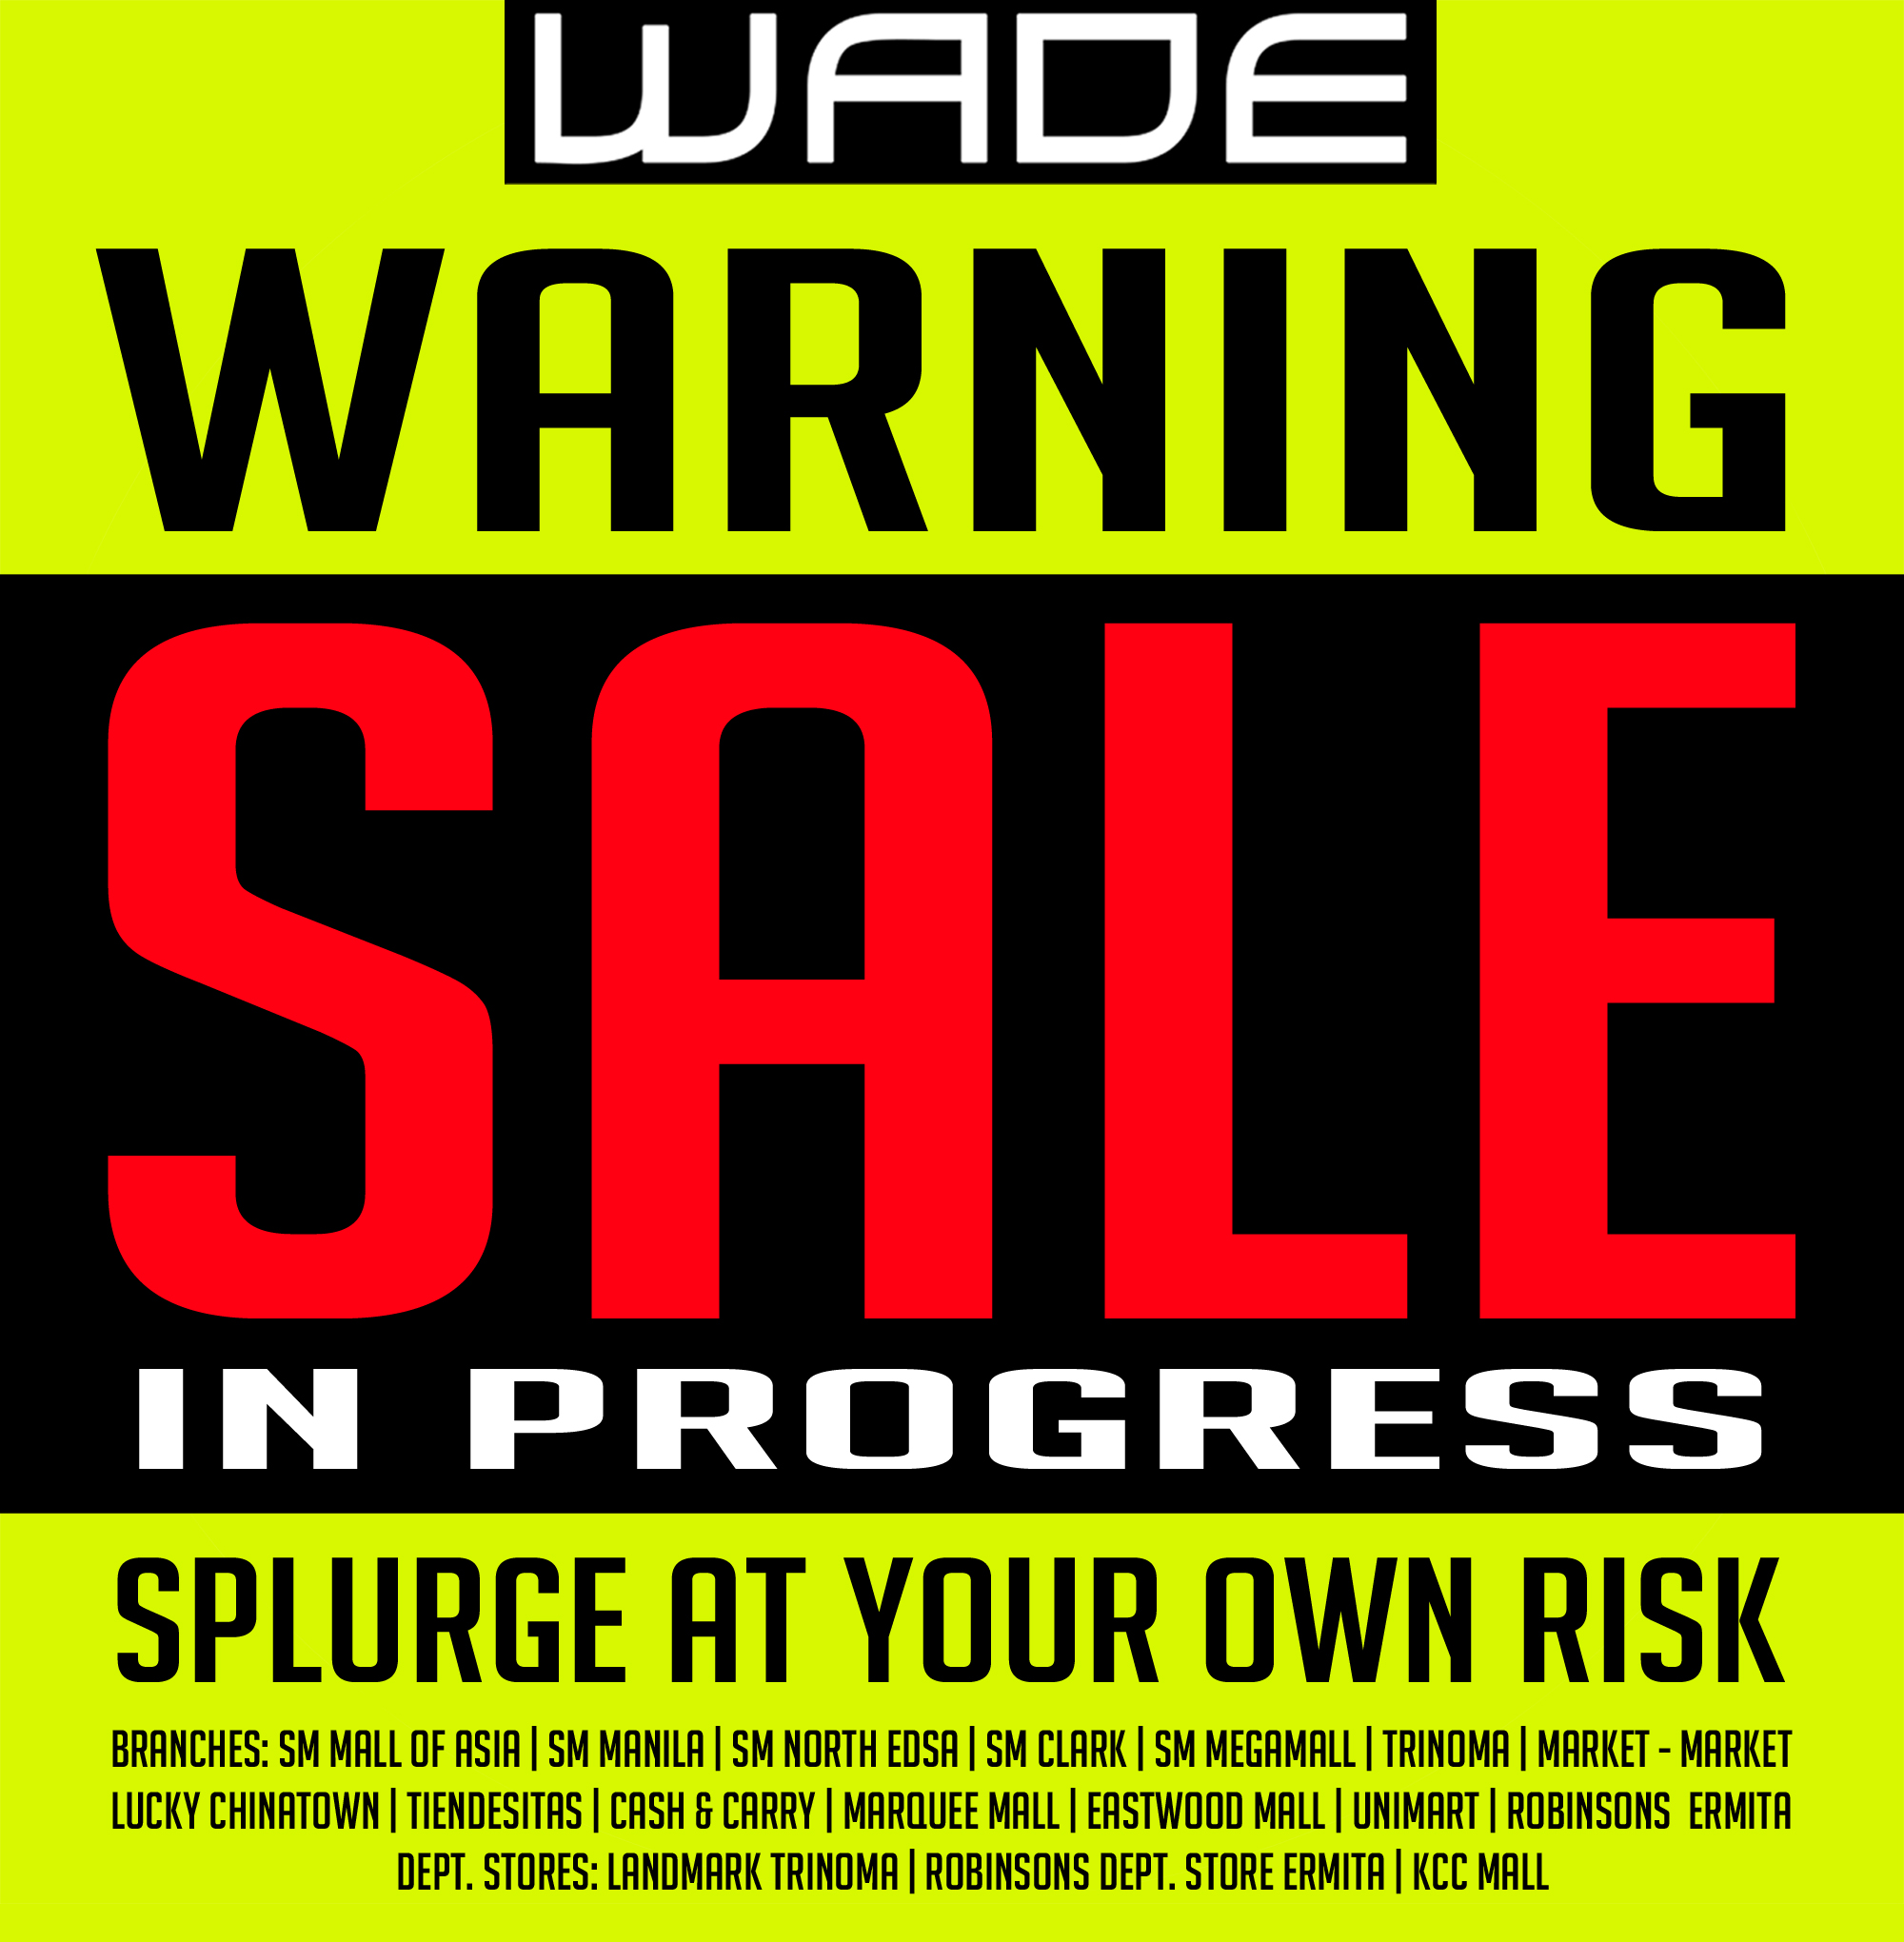 Wade Shoes and Accessories End of Season Sale June - July 2014